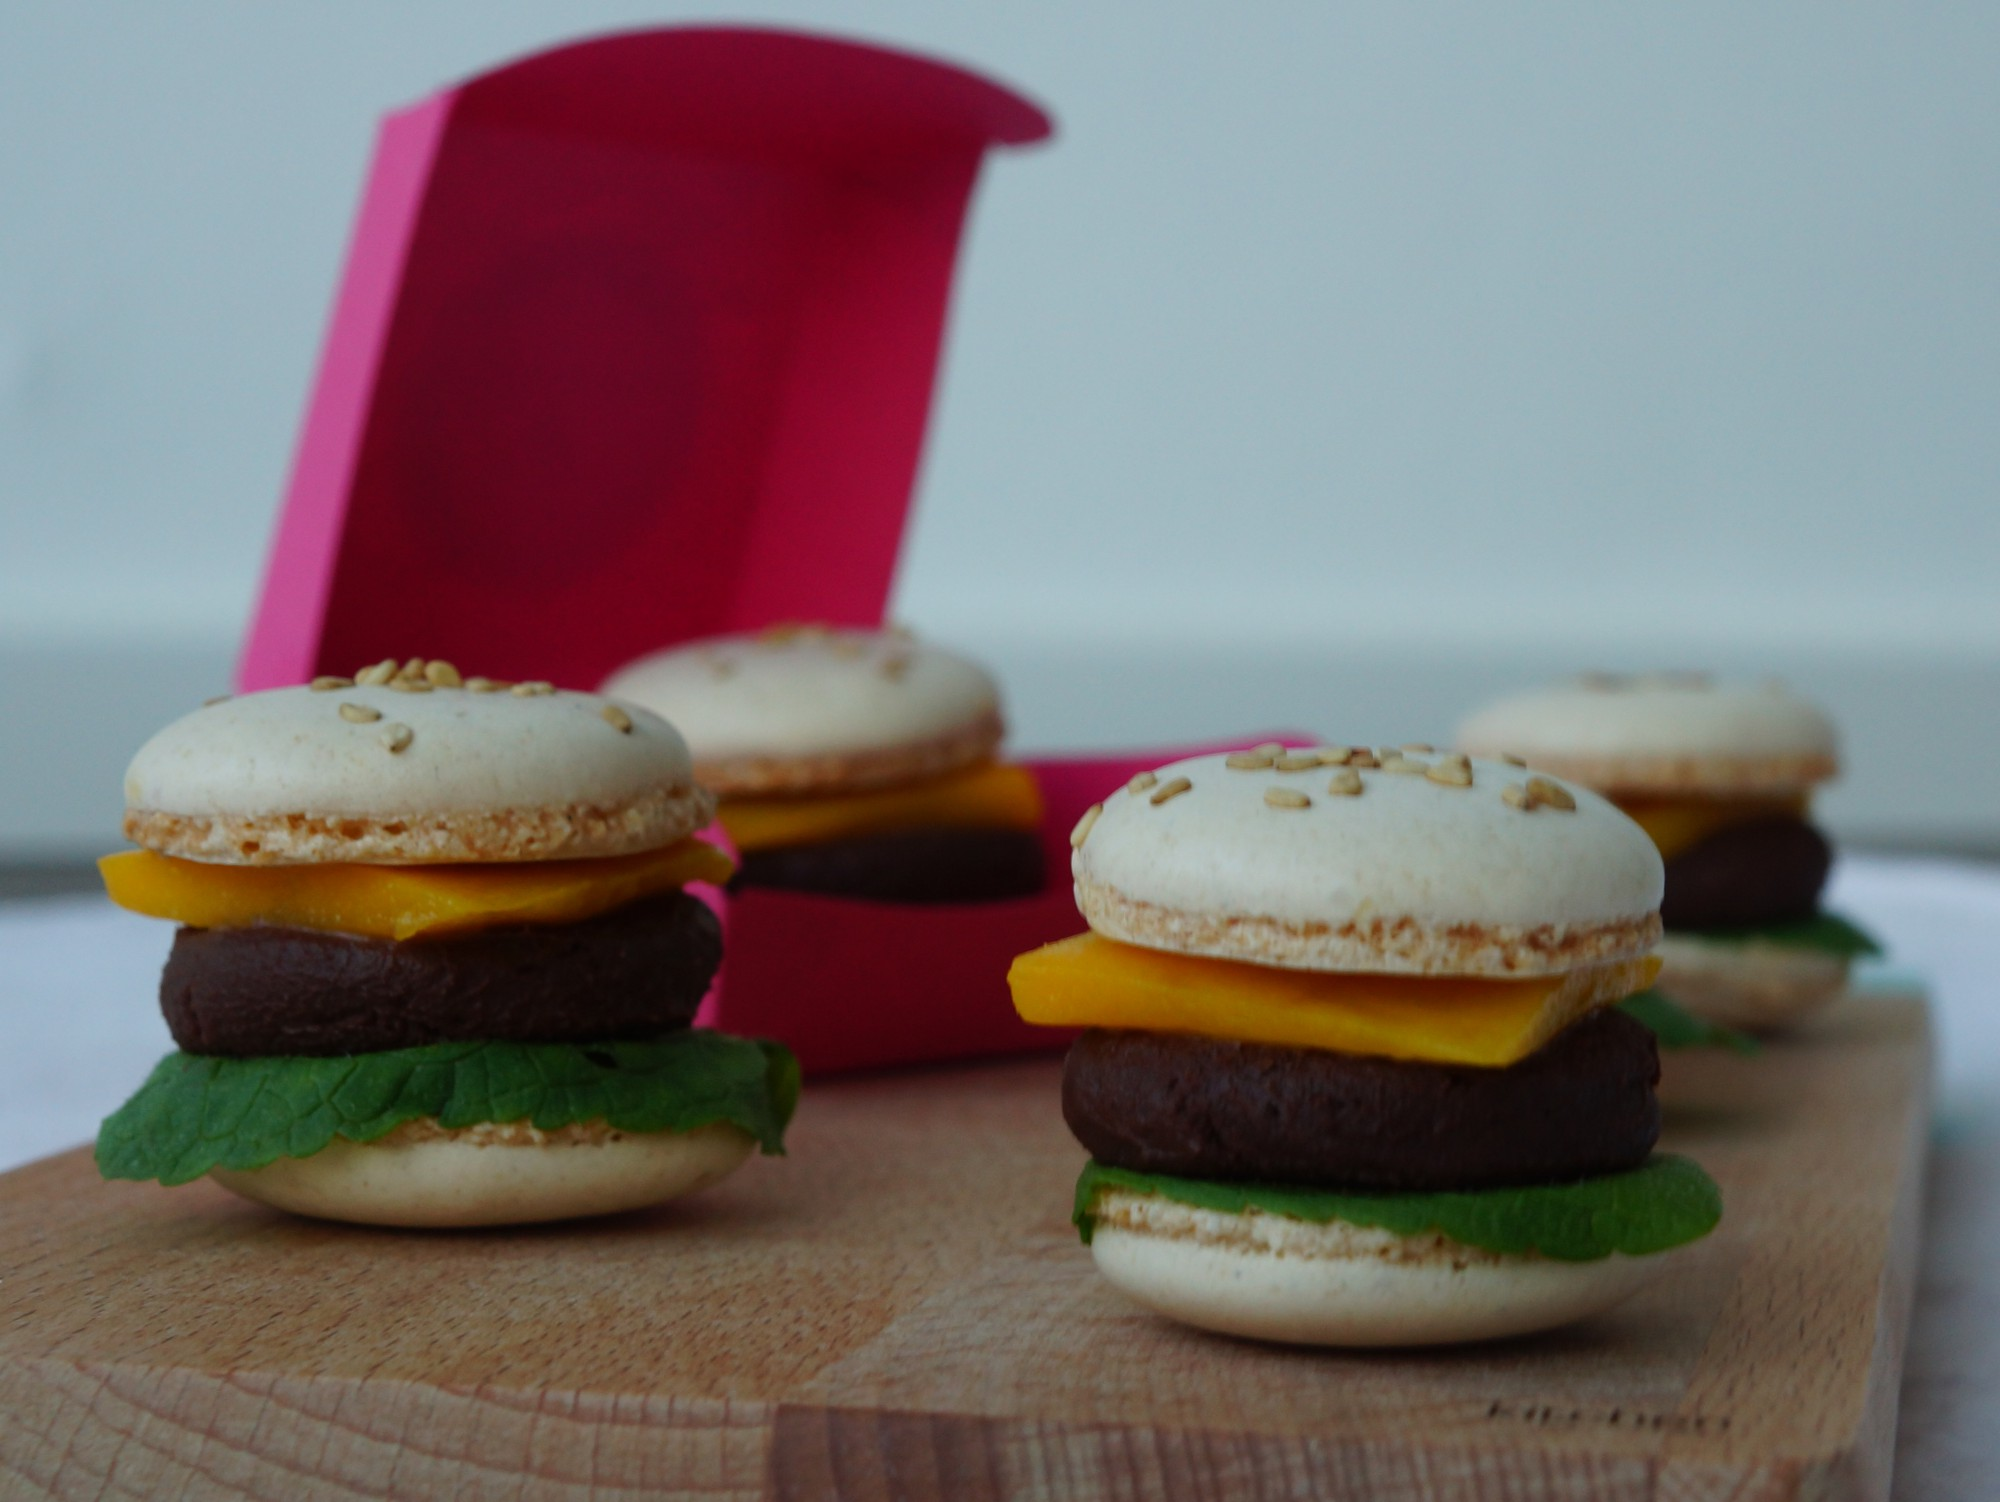 Macaron Buger with mint, chocolate and mango | schabakery.com